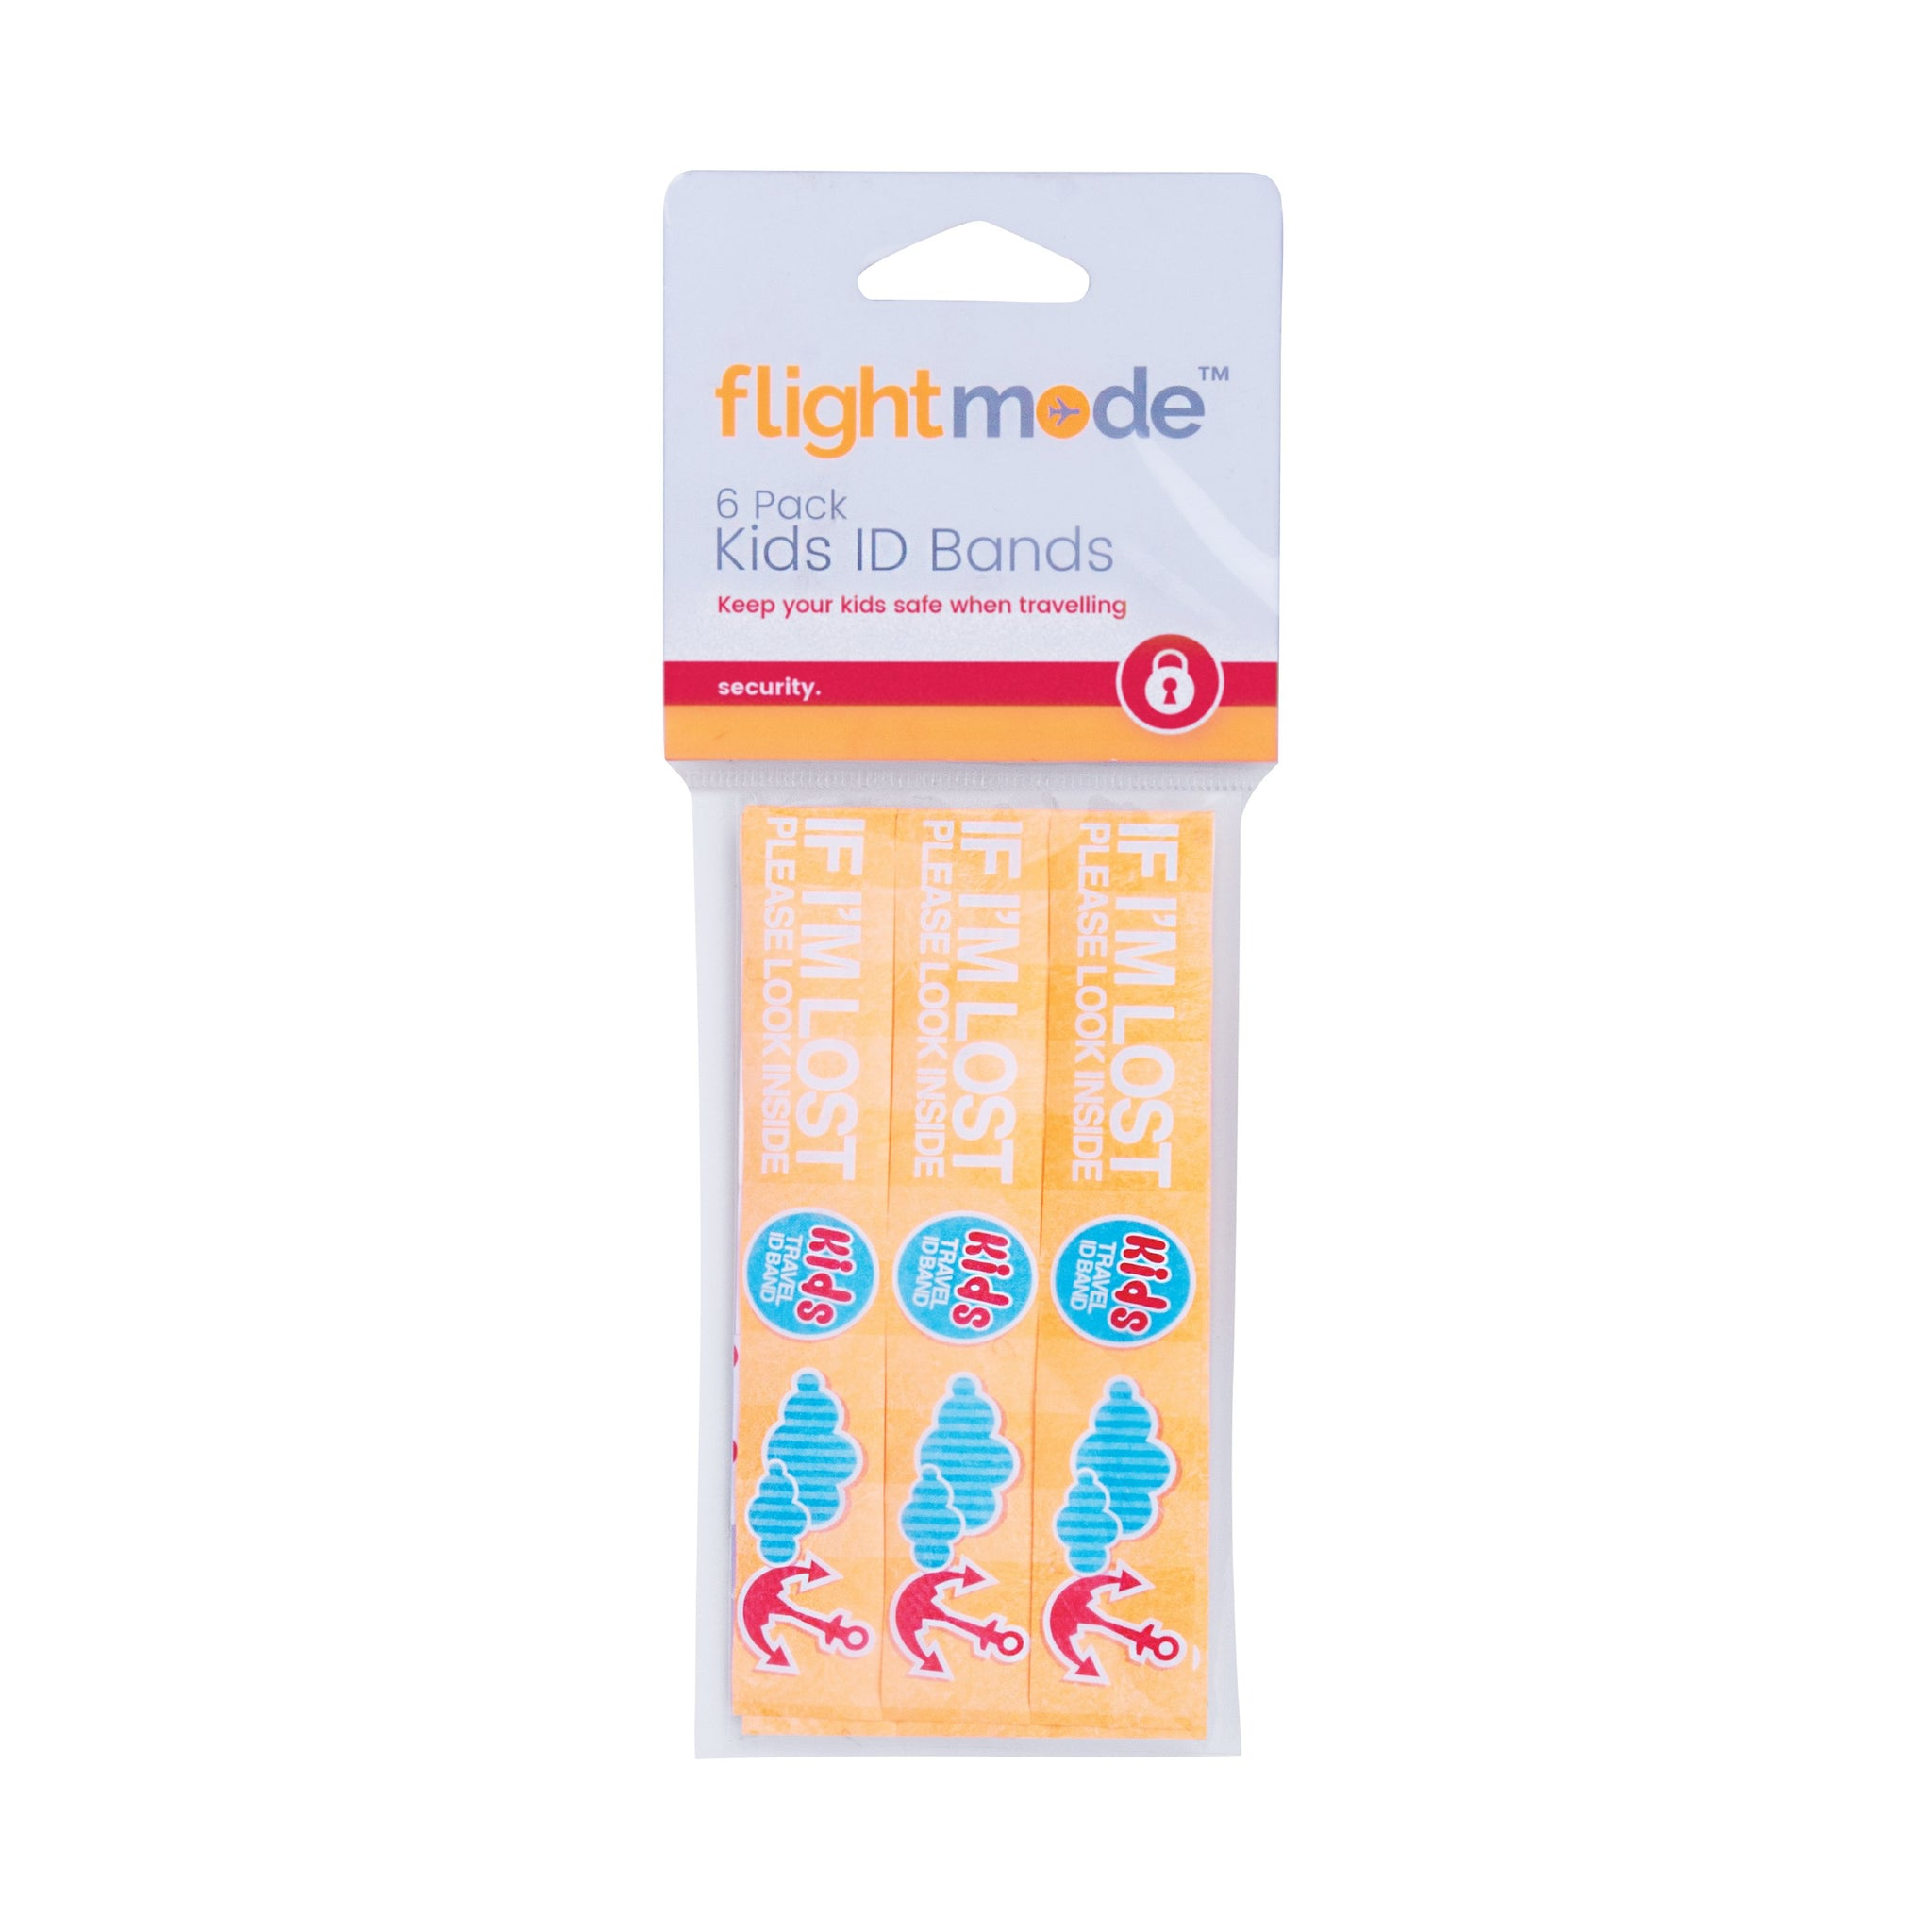 Flightmode Kids ID Band 6 Pack - If you become separated from your child at a busy airport or beach, they may have difficulty communicating to those around them - these wristbands provide the answer! Your child's information is concealed safely inside the band, safe from prying eyes. They are easy to use, just fill in details with a pen, and they're waterproof and tough.